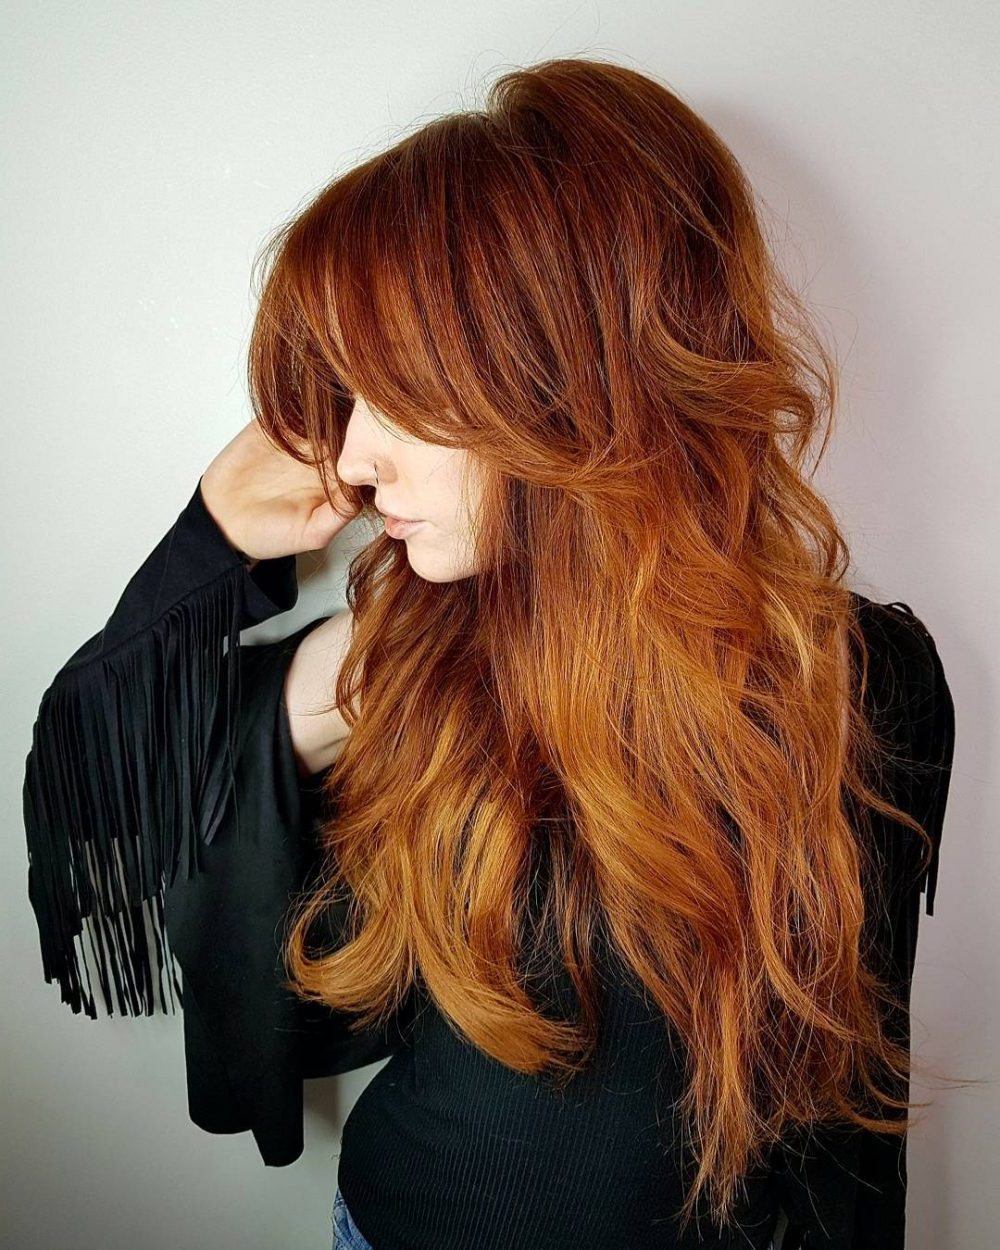 Widely Used Long Shag Haircuts With Extreme Layers In Long Shag Haircuts: 36 Examples For (View 6 of 20)